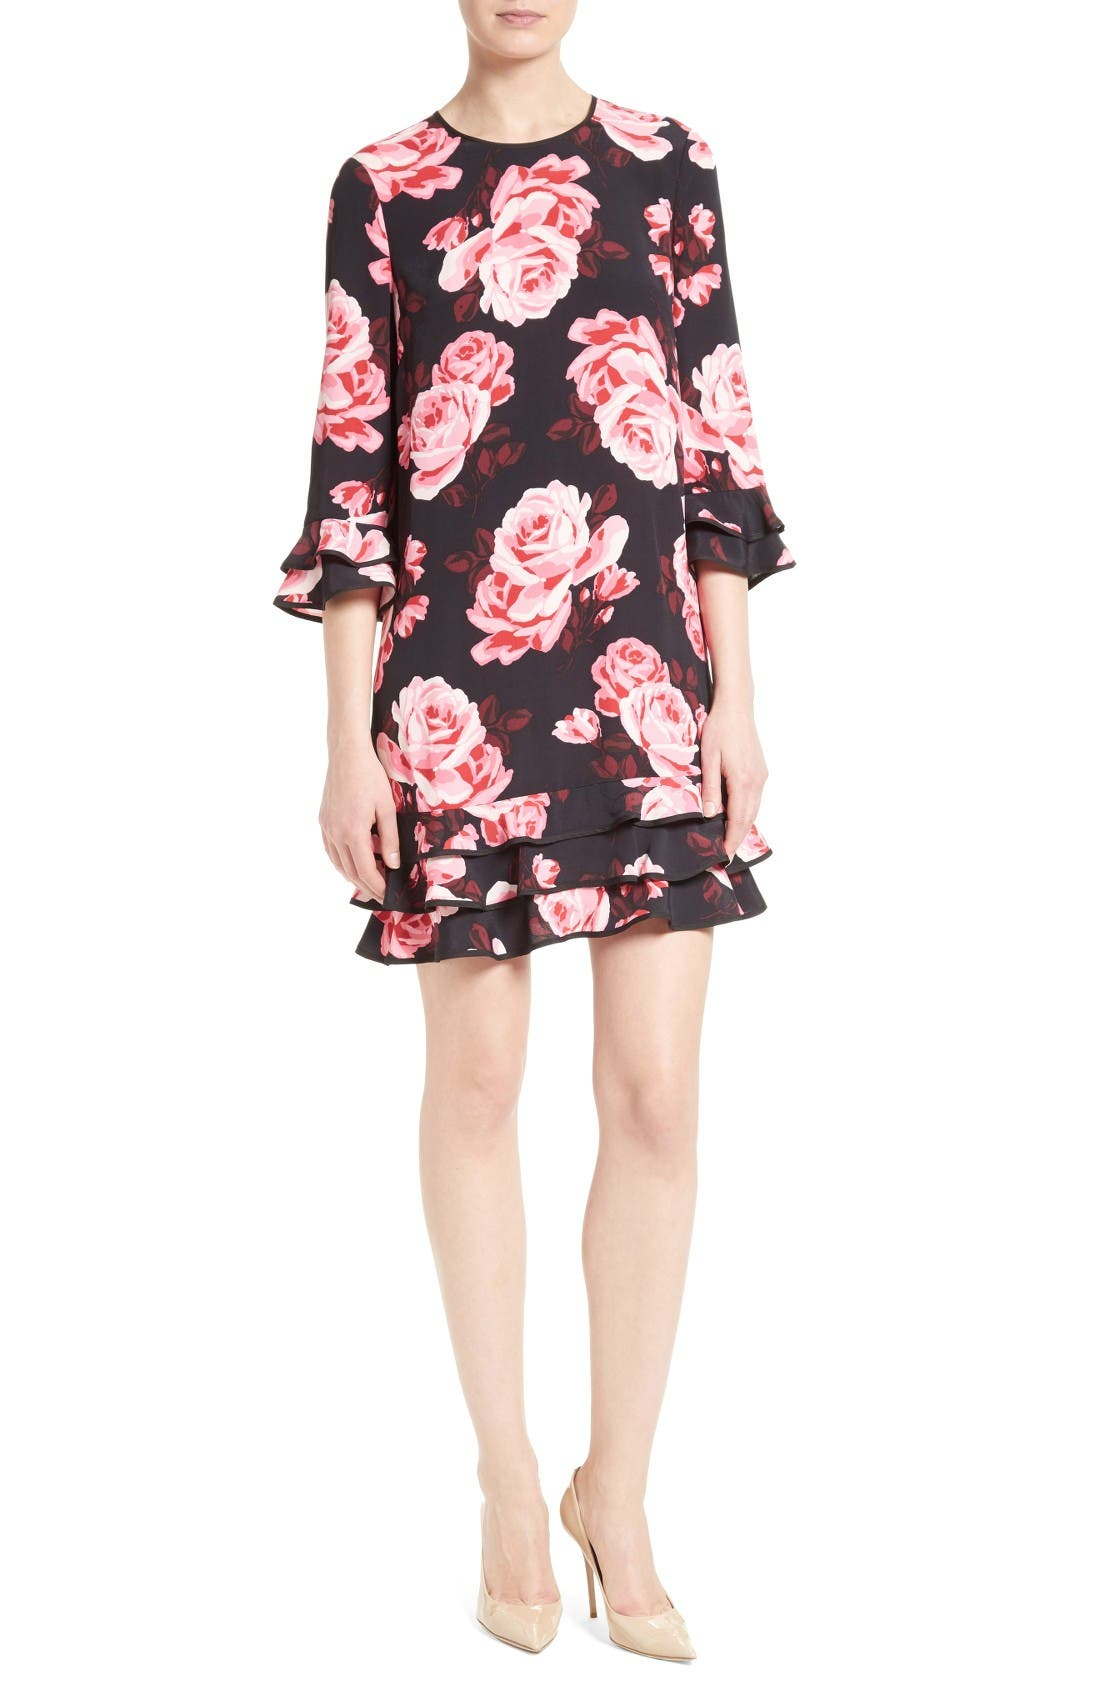 KATE SPADE NEW YORK rosa ruffle shift dress